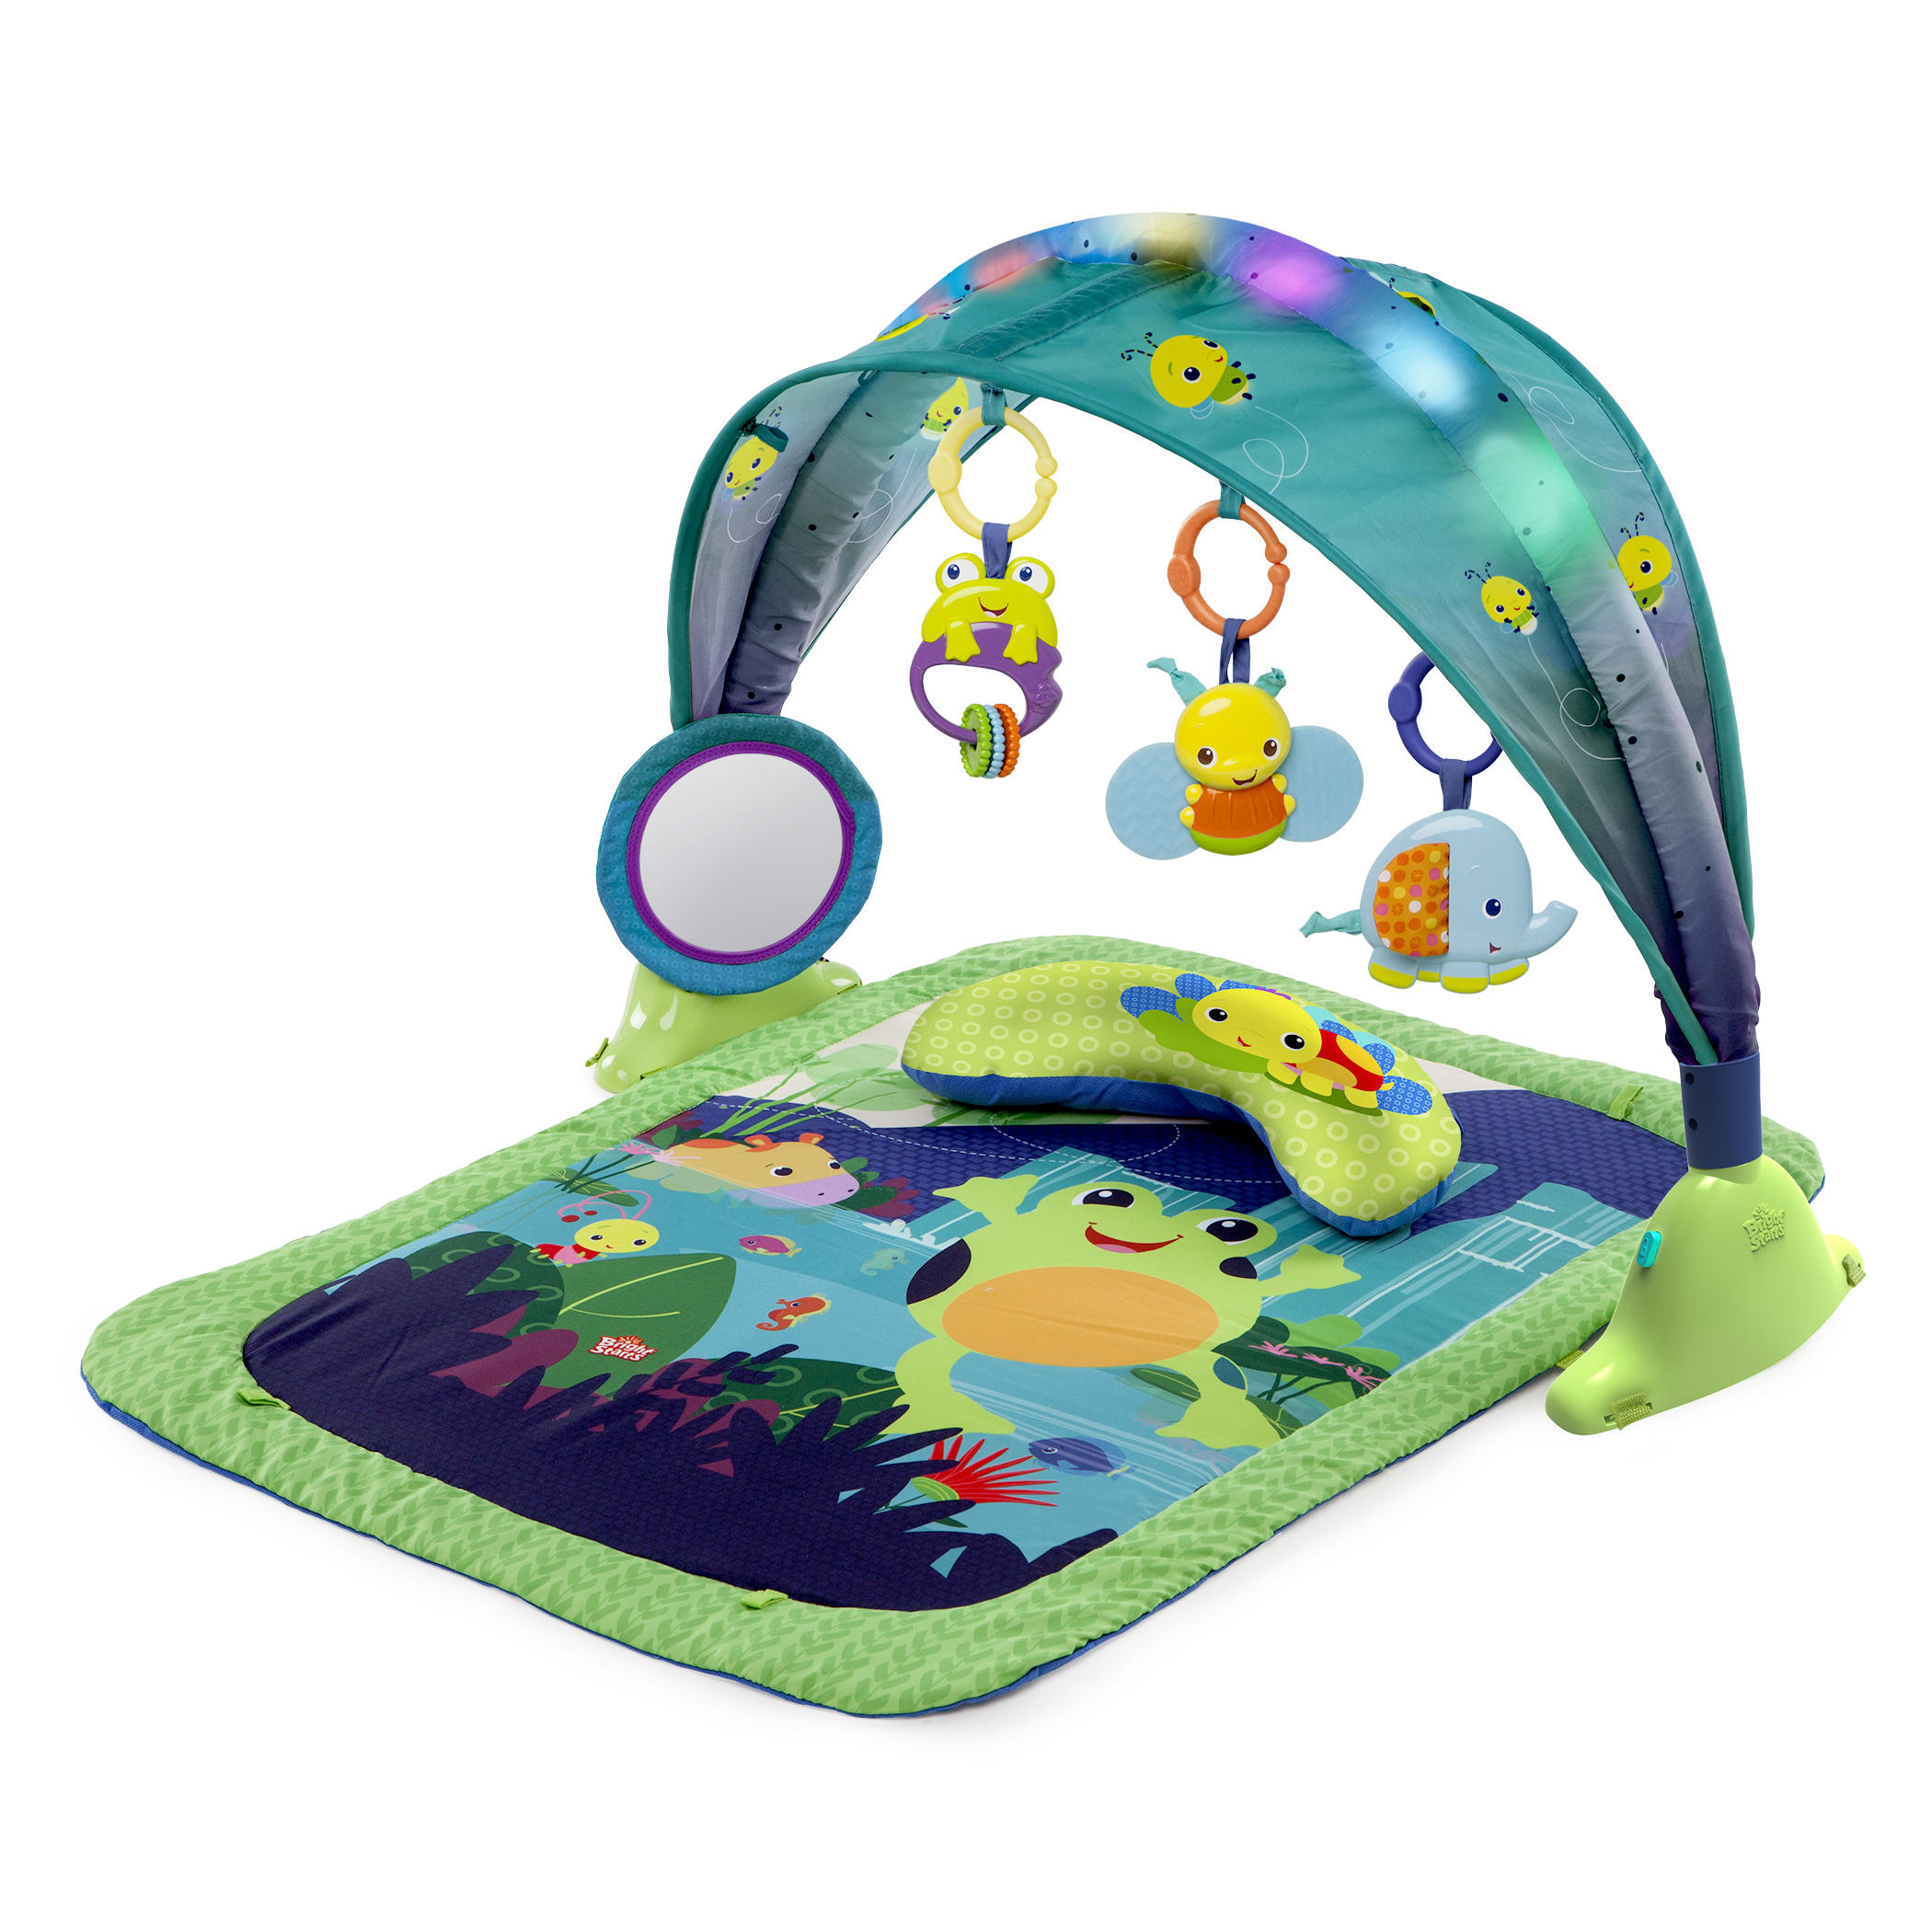 Bright Starts Light Up Lagoon Activity Gym